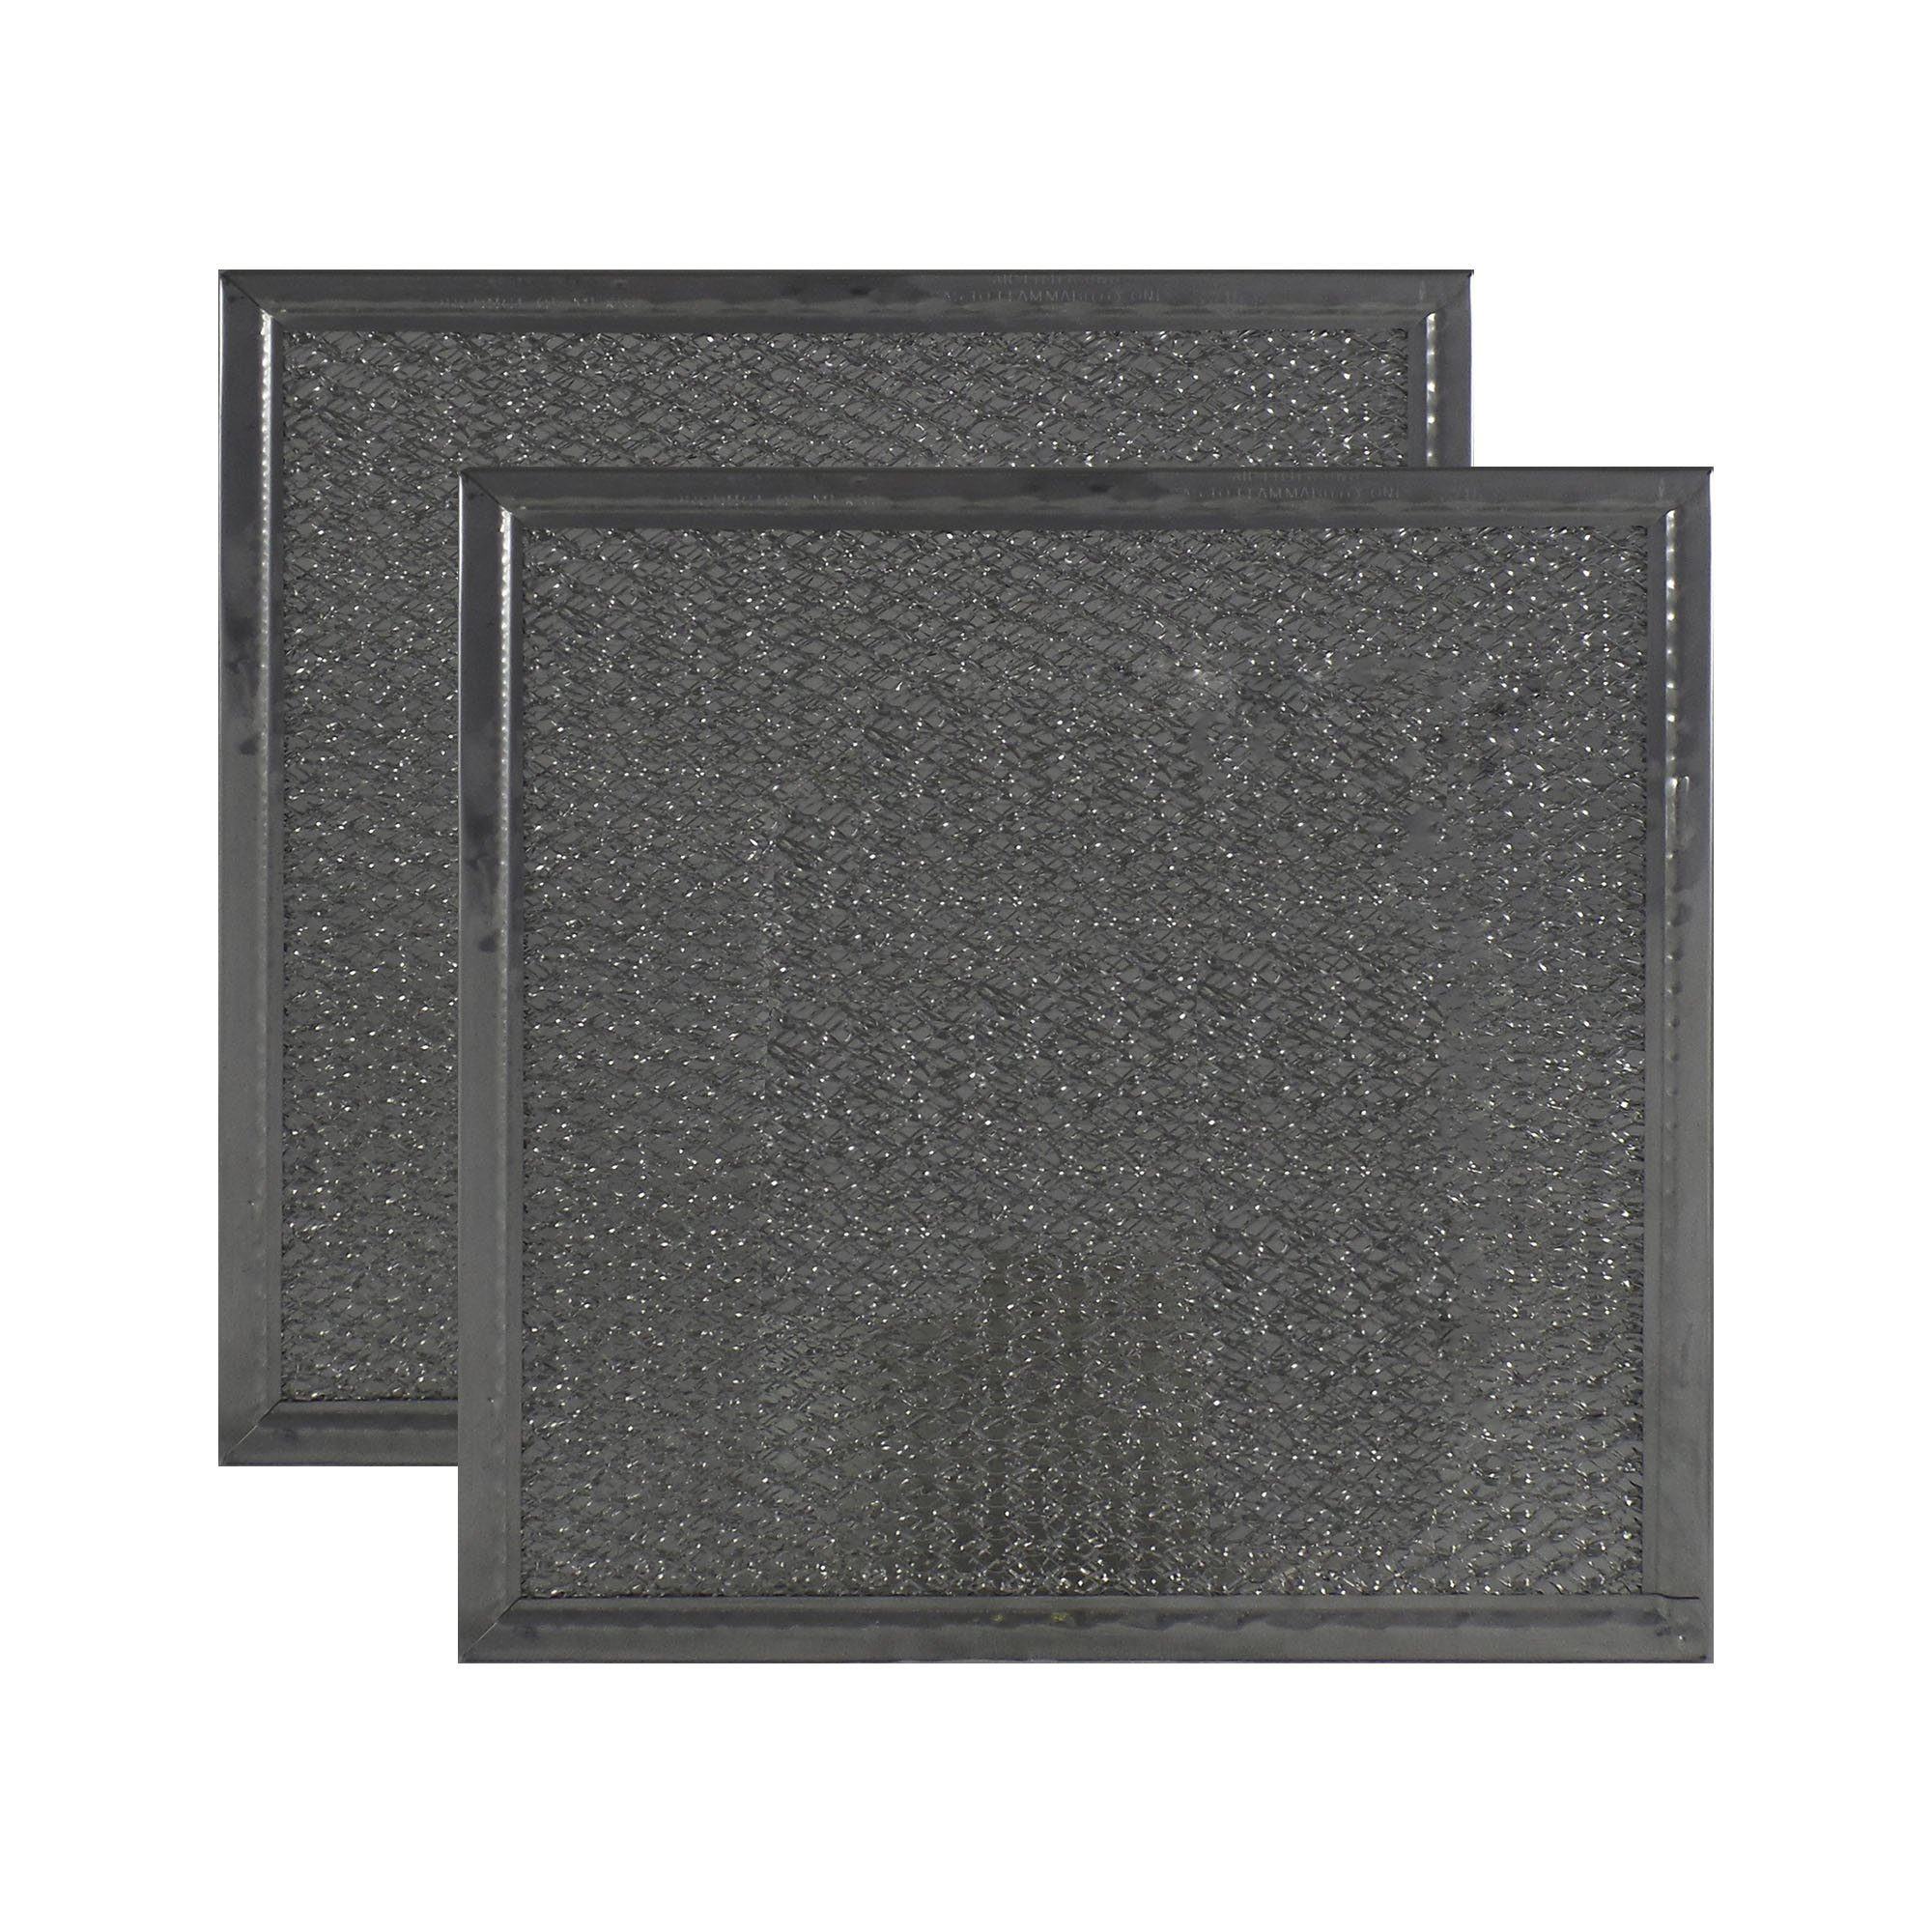 2 PACK Air Filter Factory 8'' X 8'' X 3/32'' Microwave Oven Aluminum Grease Filter AFF90-M